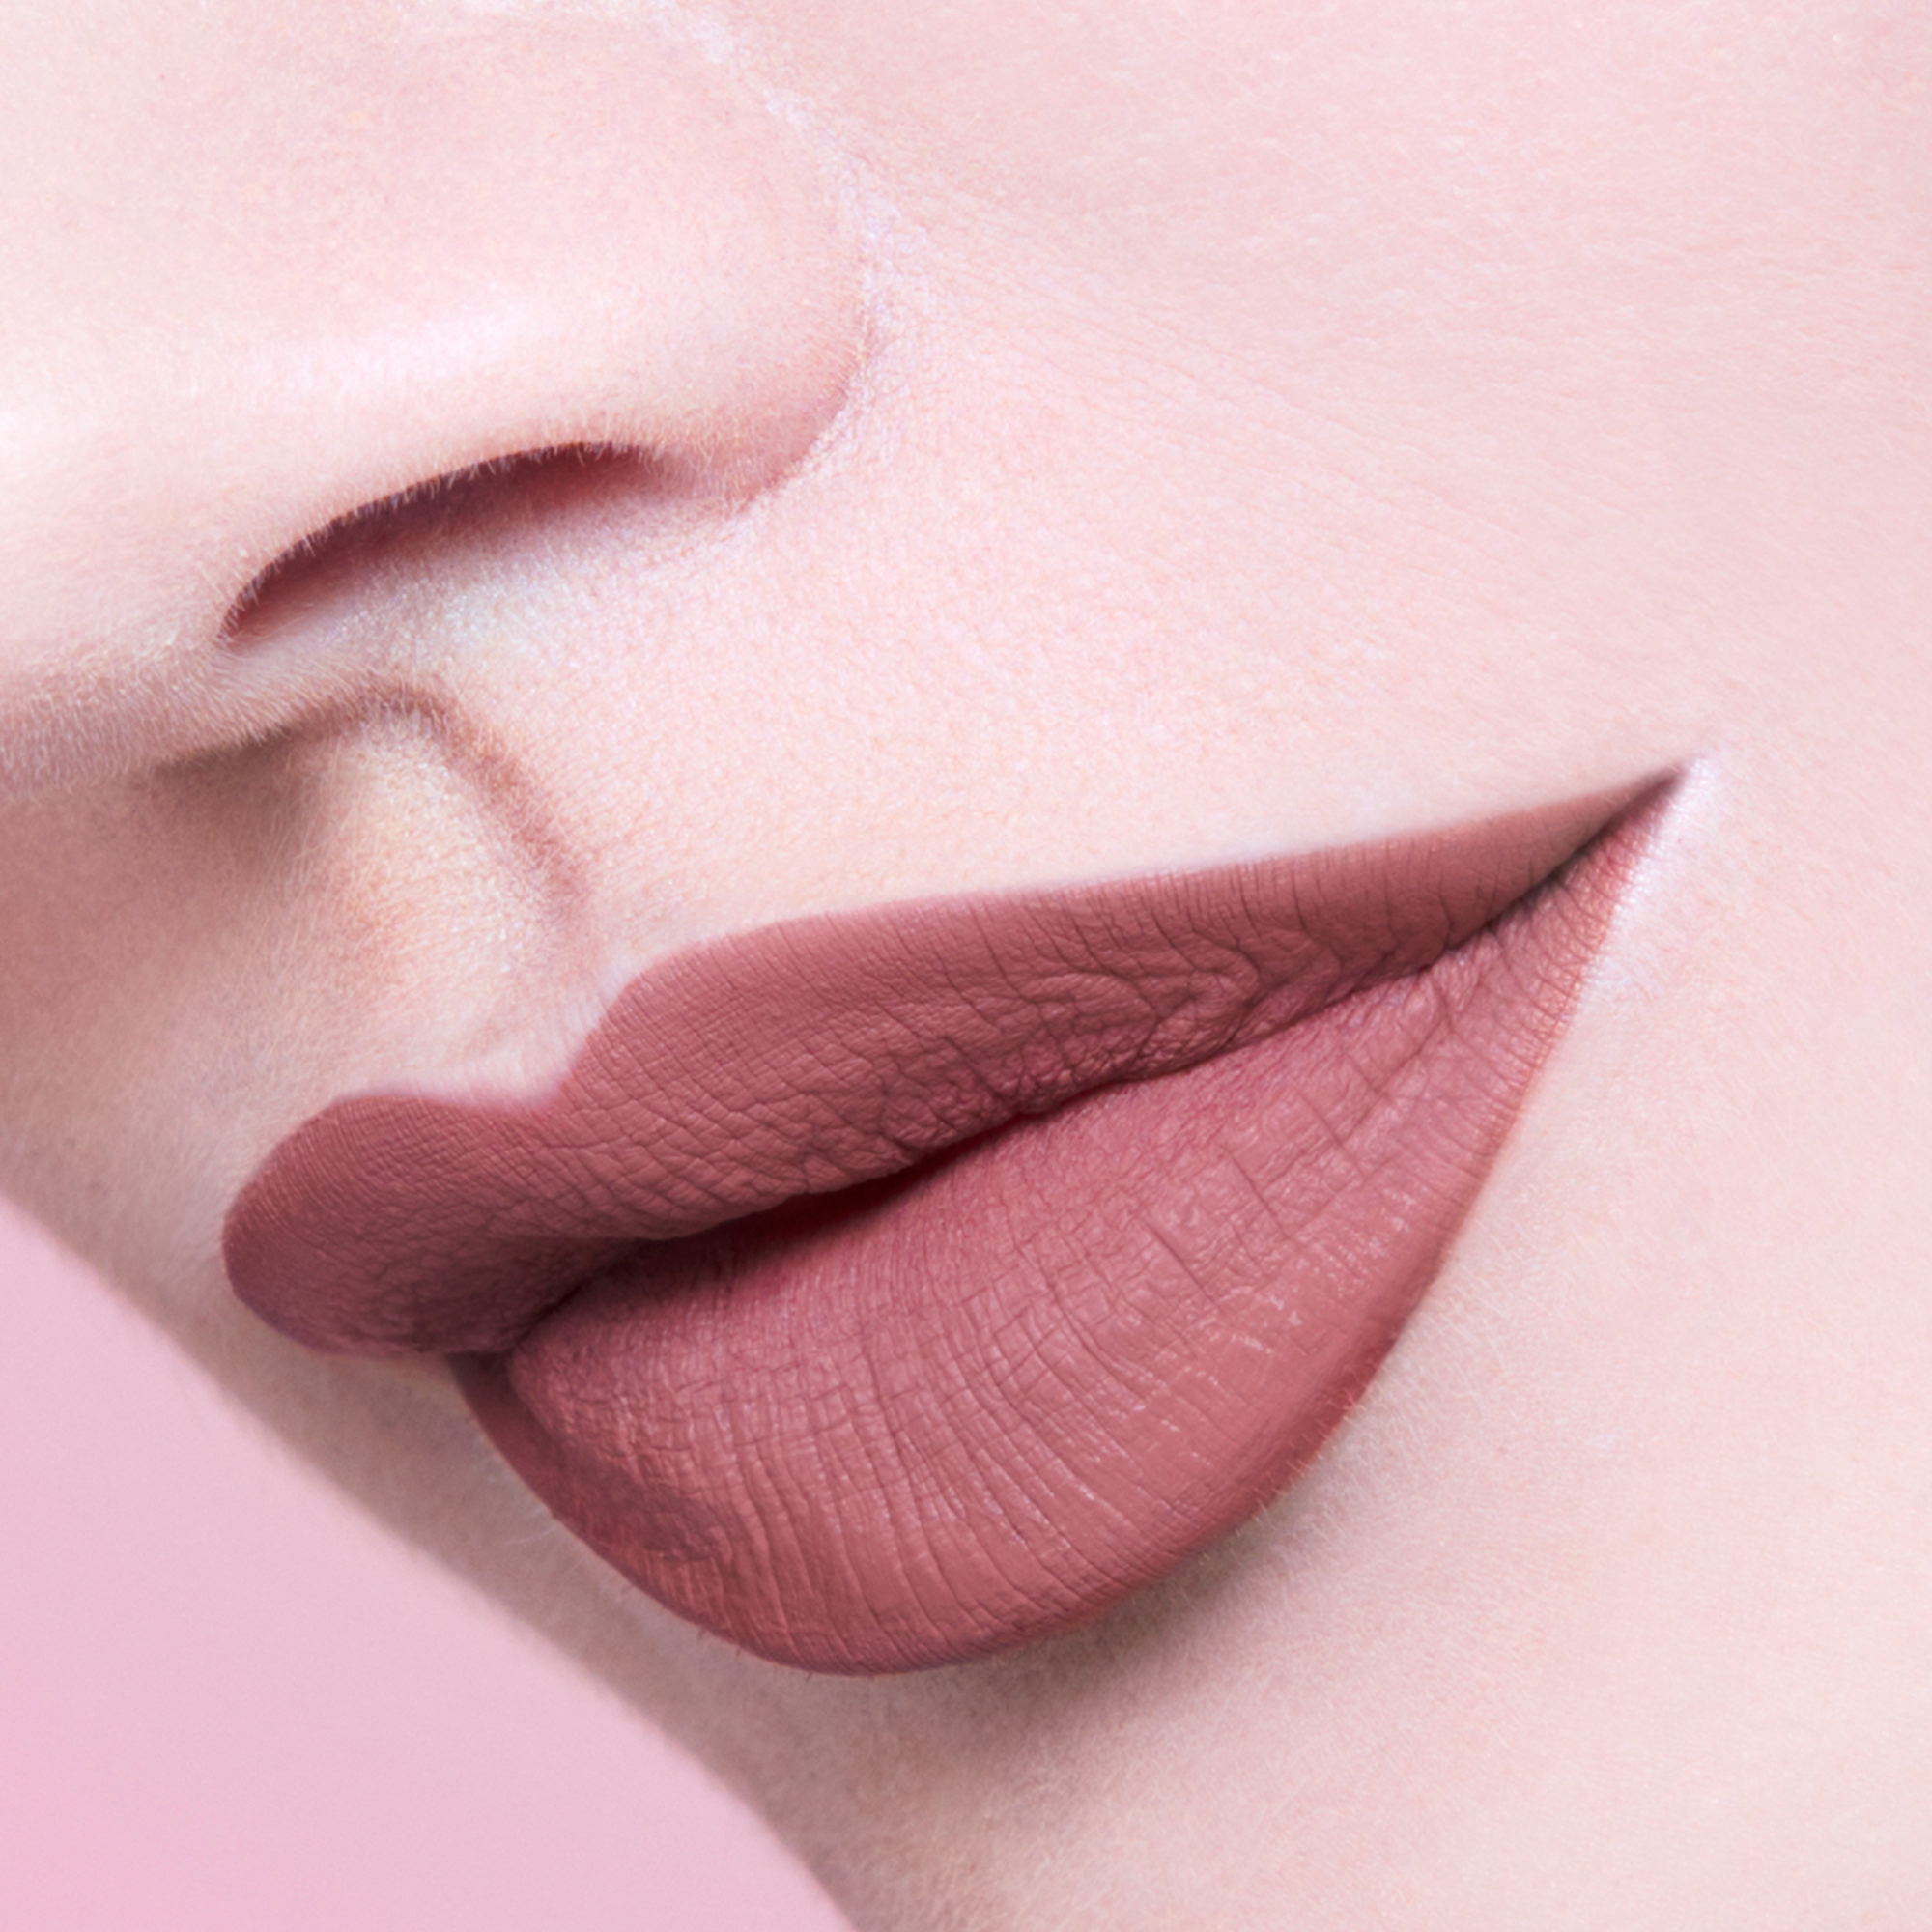 Fantasticolour Liquid Lipstick in Dare Naked by Beauty Pie US